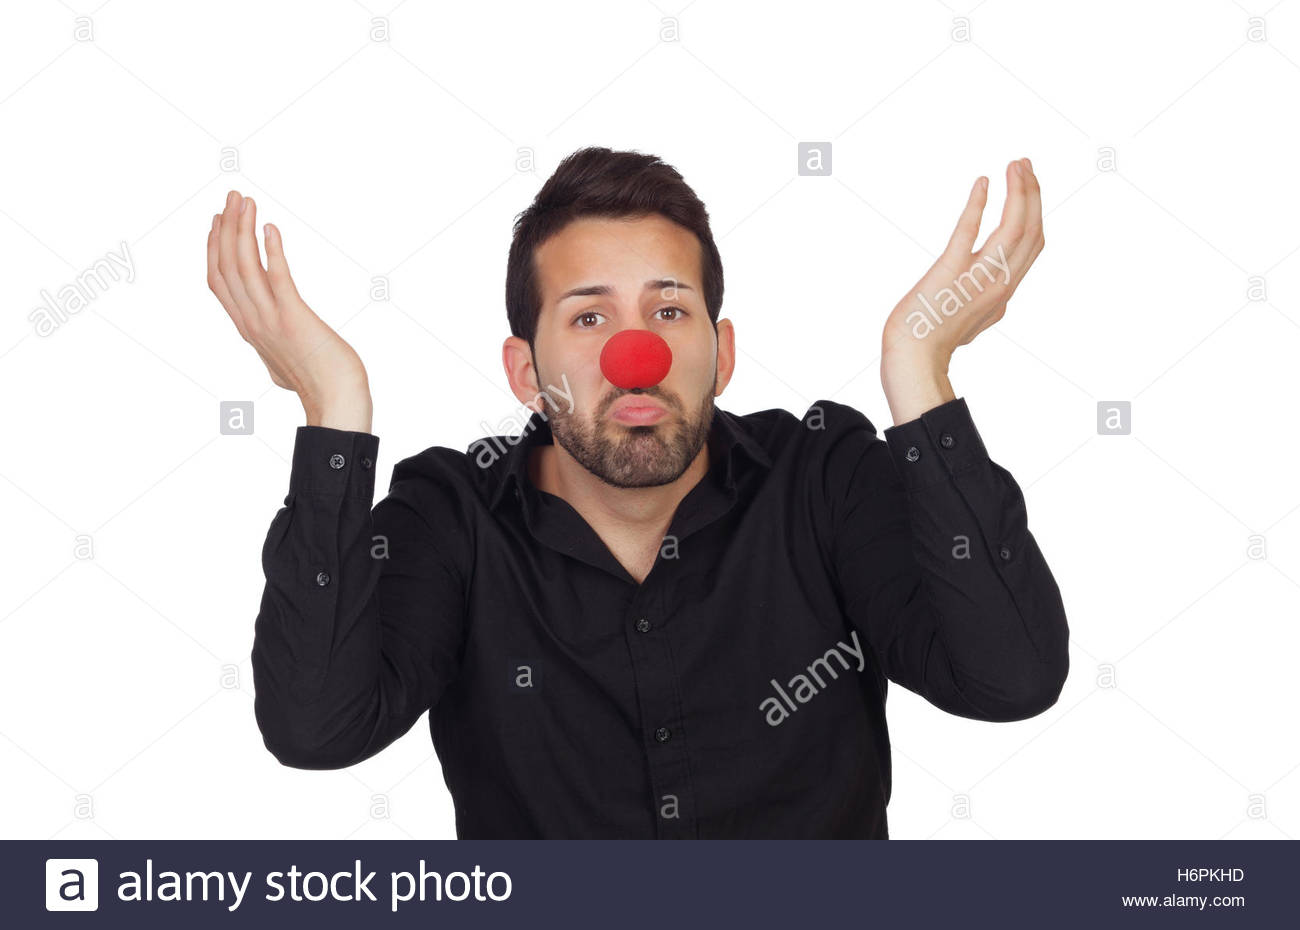 Ignorant businessman with clown nose isolated on white background 1300x930